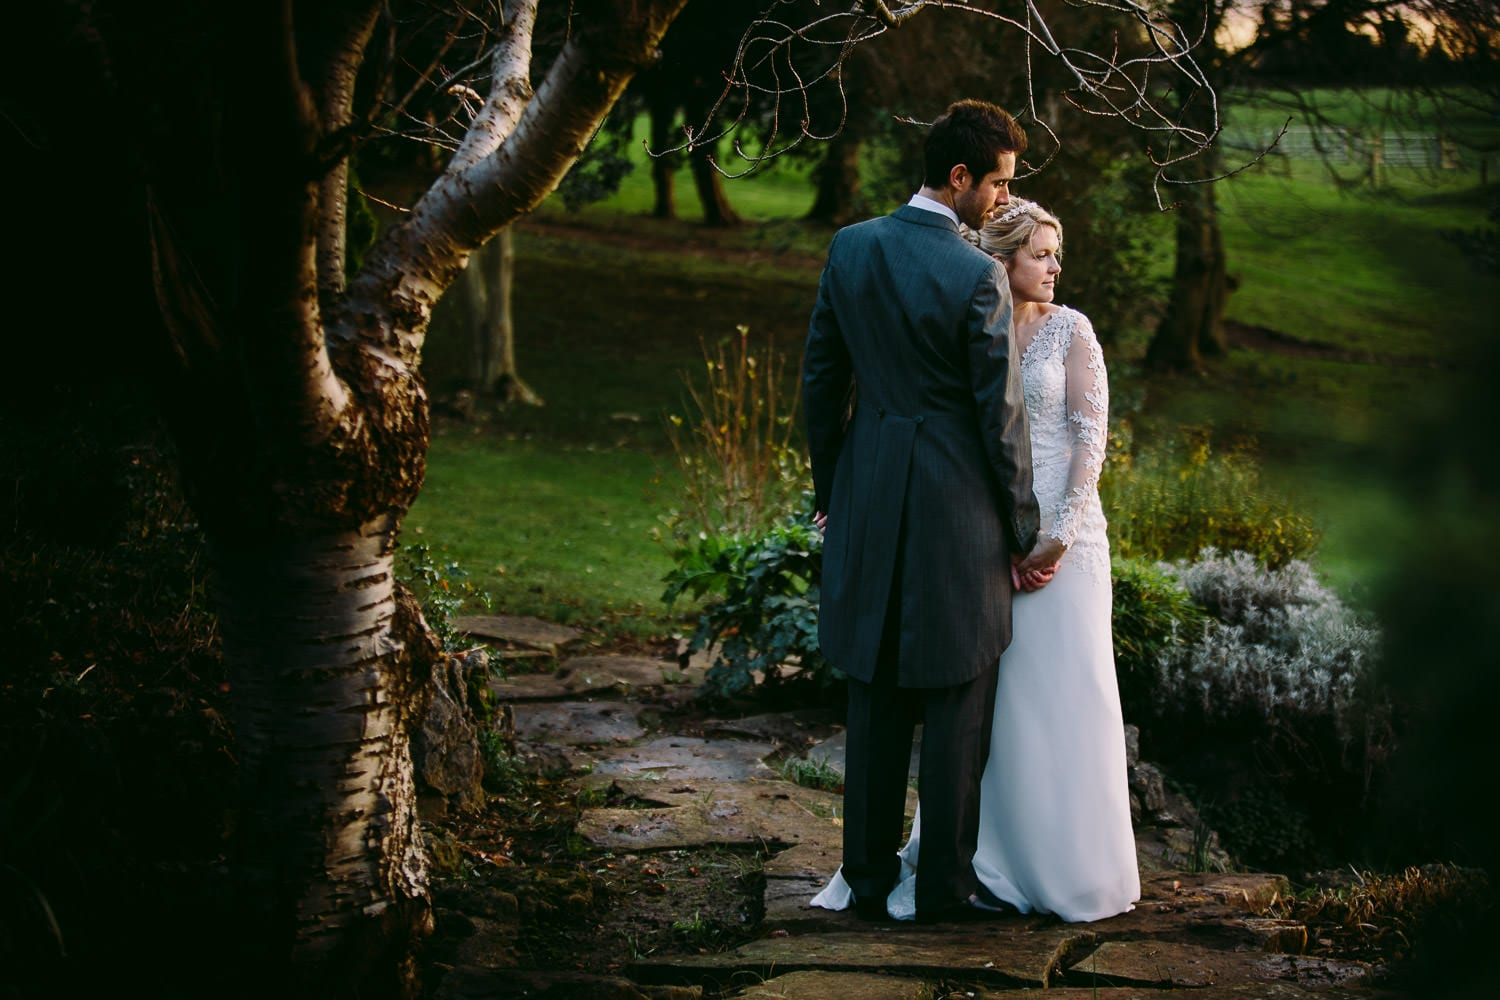 A portrait of the bride and groom in the garden